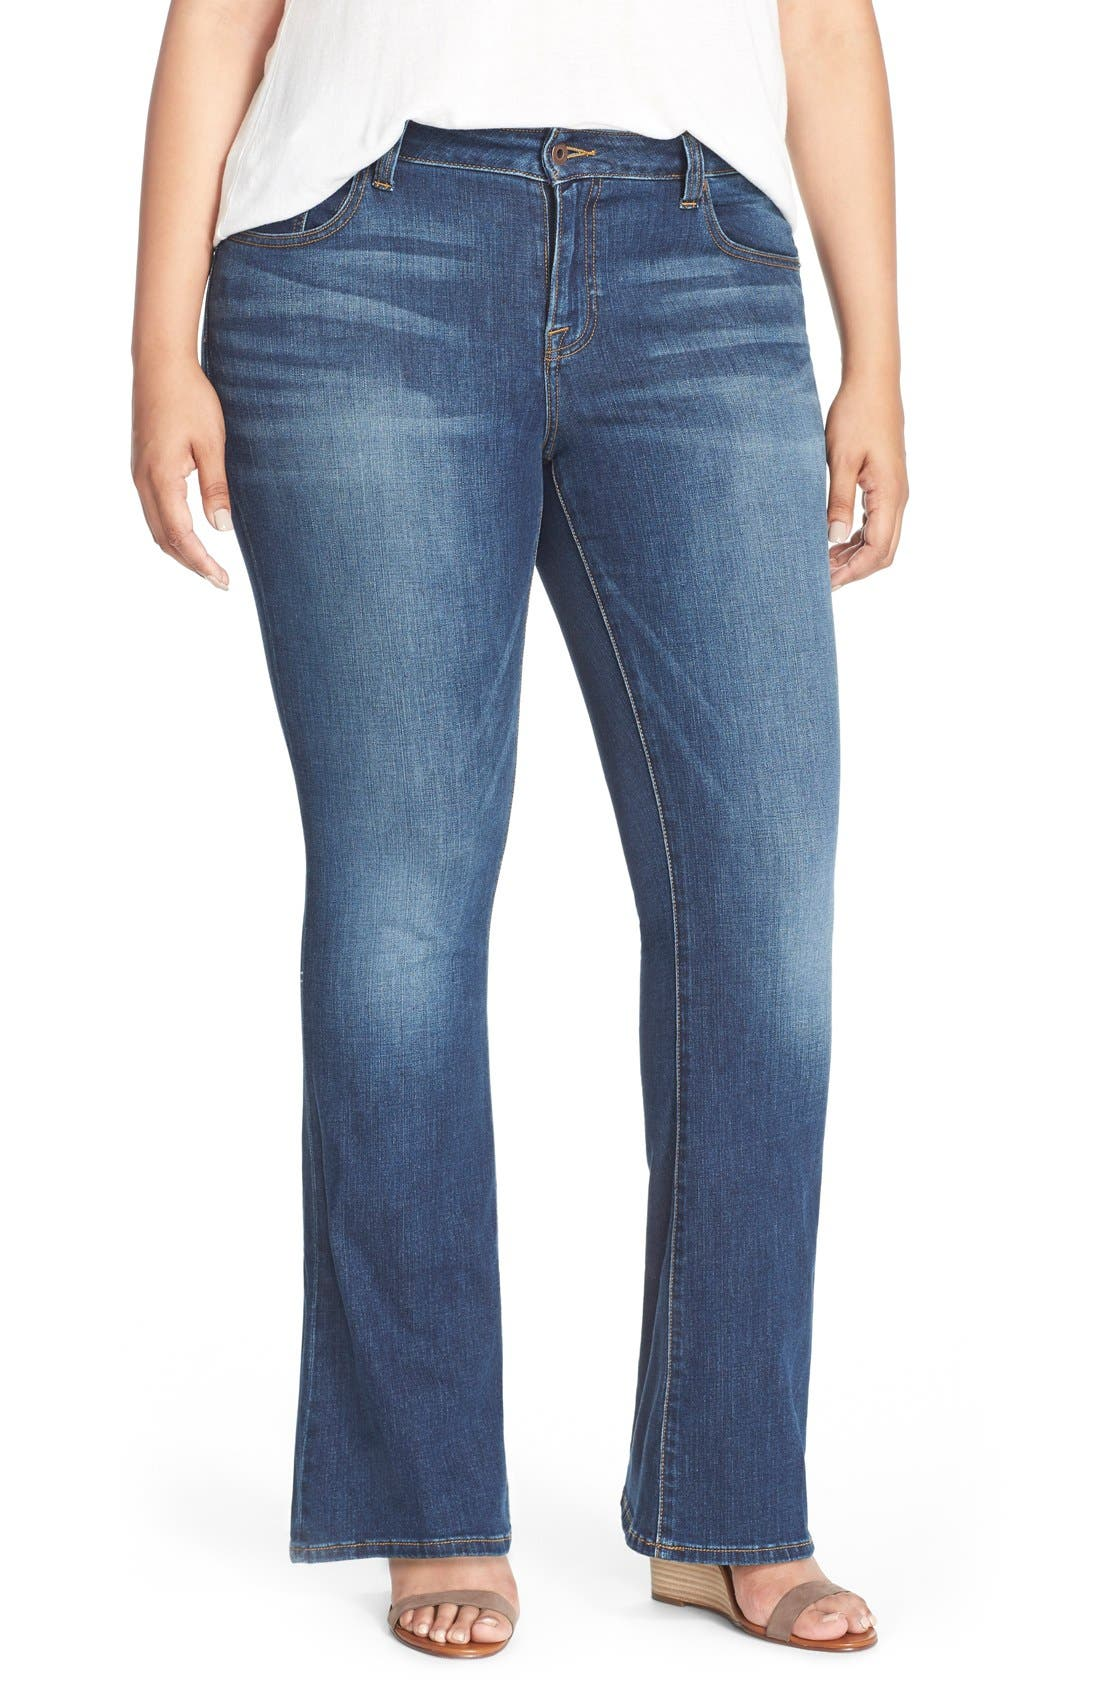 Alternate Image 1 Selected - Lucky Brand Ginger Bootcut Jeans (Amazonite) (Plus Size & Petite Plus)